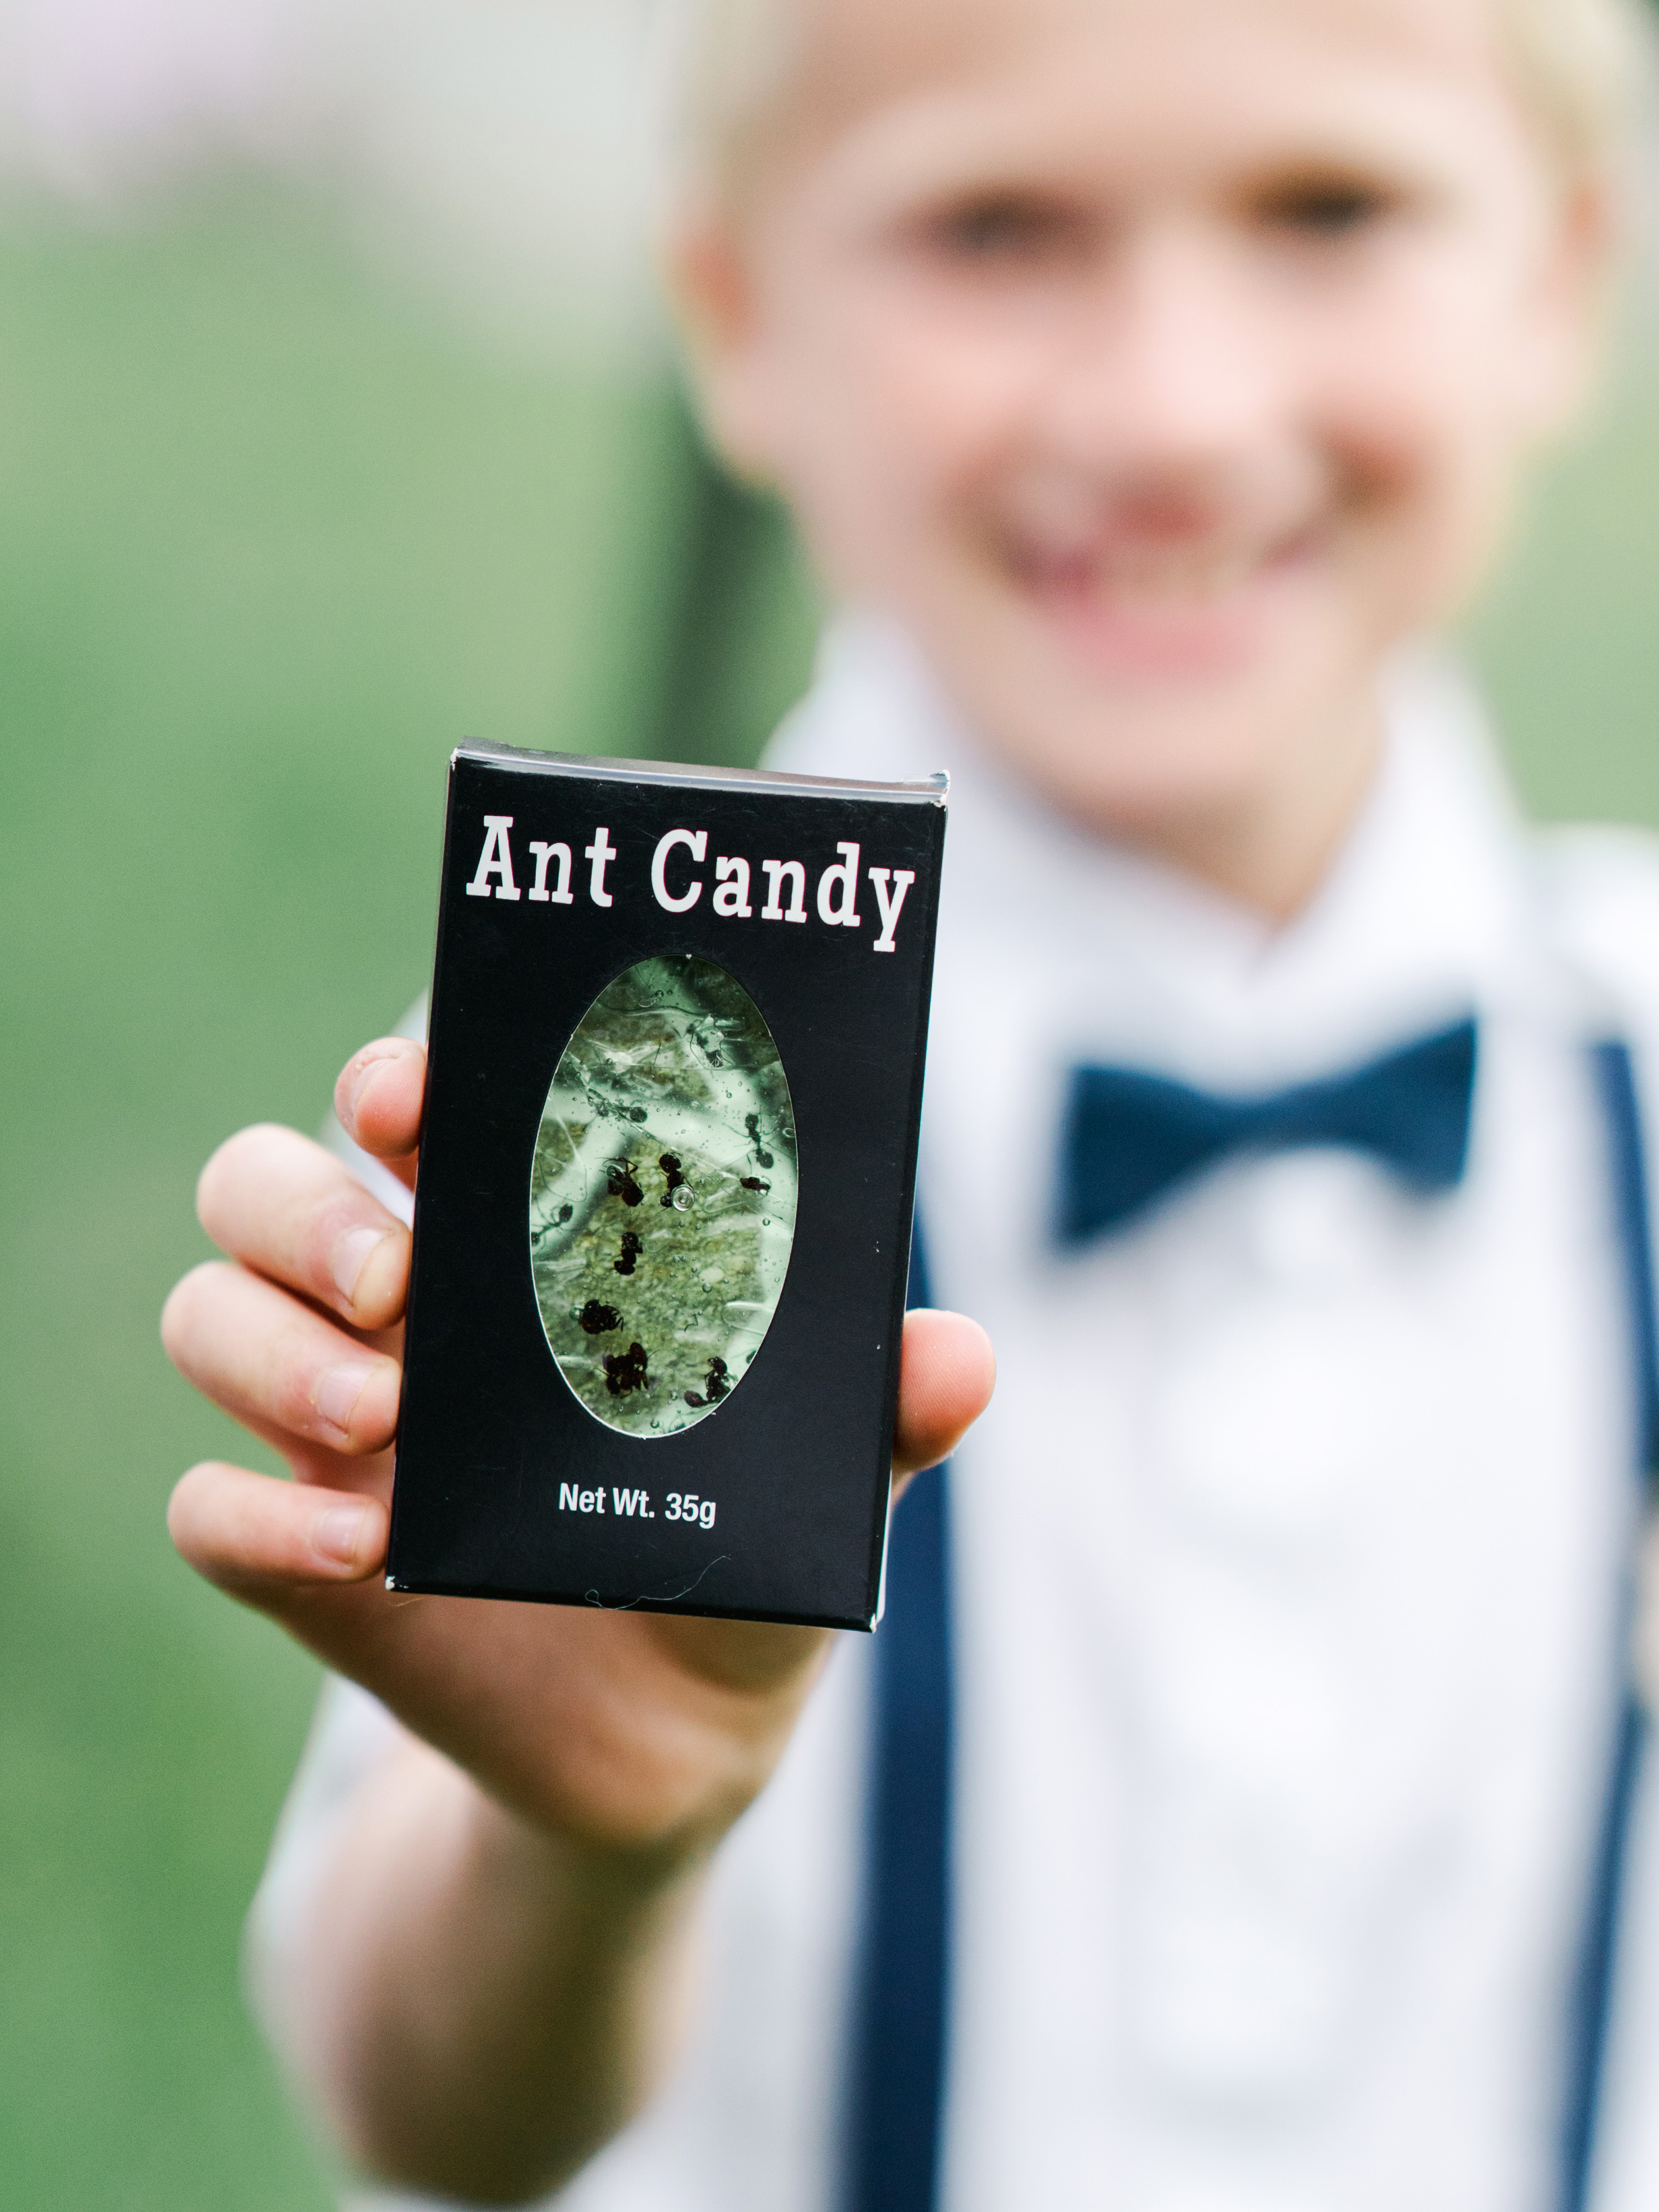 dayane collin wedding ant candy held up by boy in bowtie